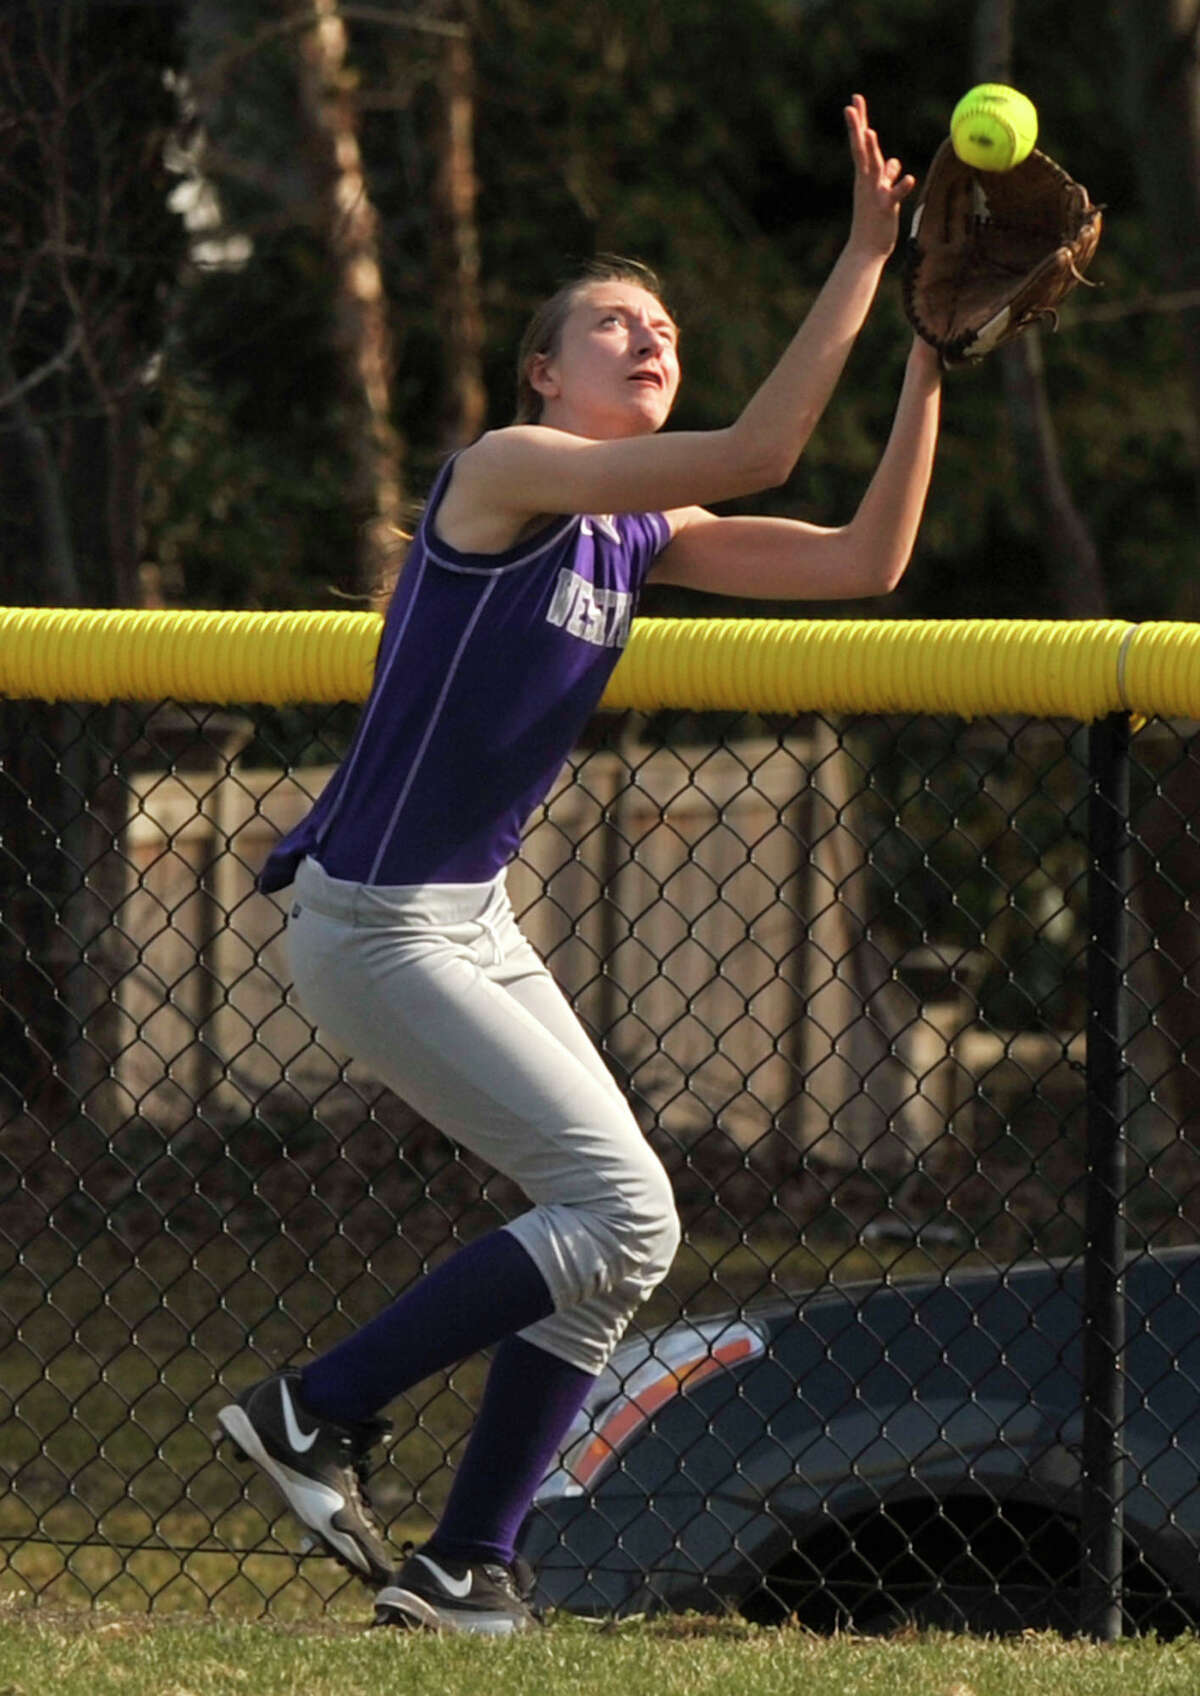 Westhill left fielder Jessica Ruffels makes a catch near the fence during the Viking's game against Darien at Darien High School on Monday, April 8, 2013. Westhill beat Darien, 11-9.